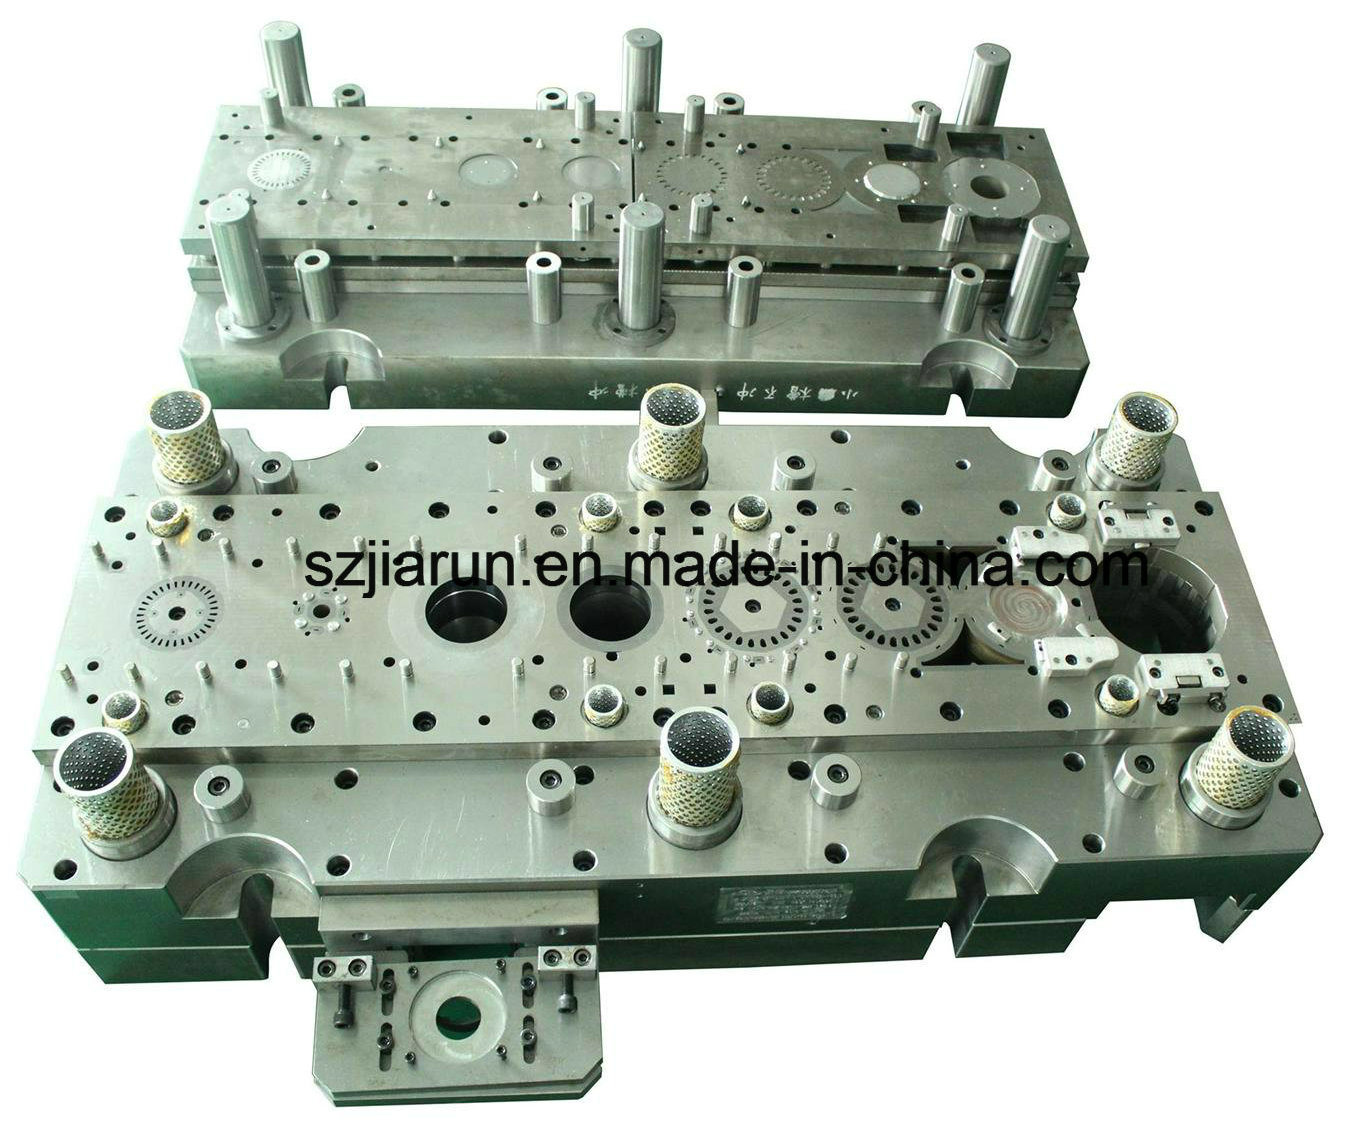 [Hot Item] YAMAHA Outboard Parts Progressive Stamping Die/Mould/Tool/Mold